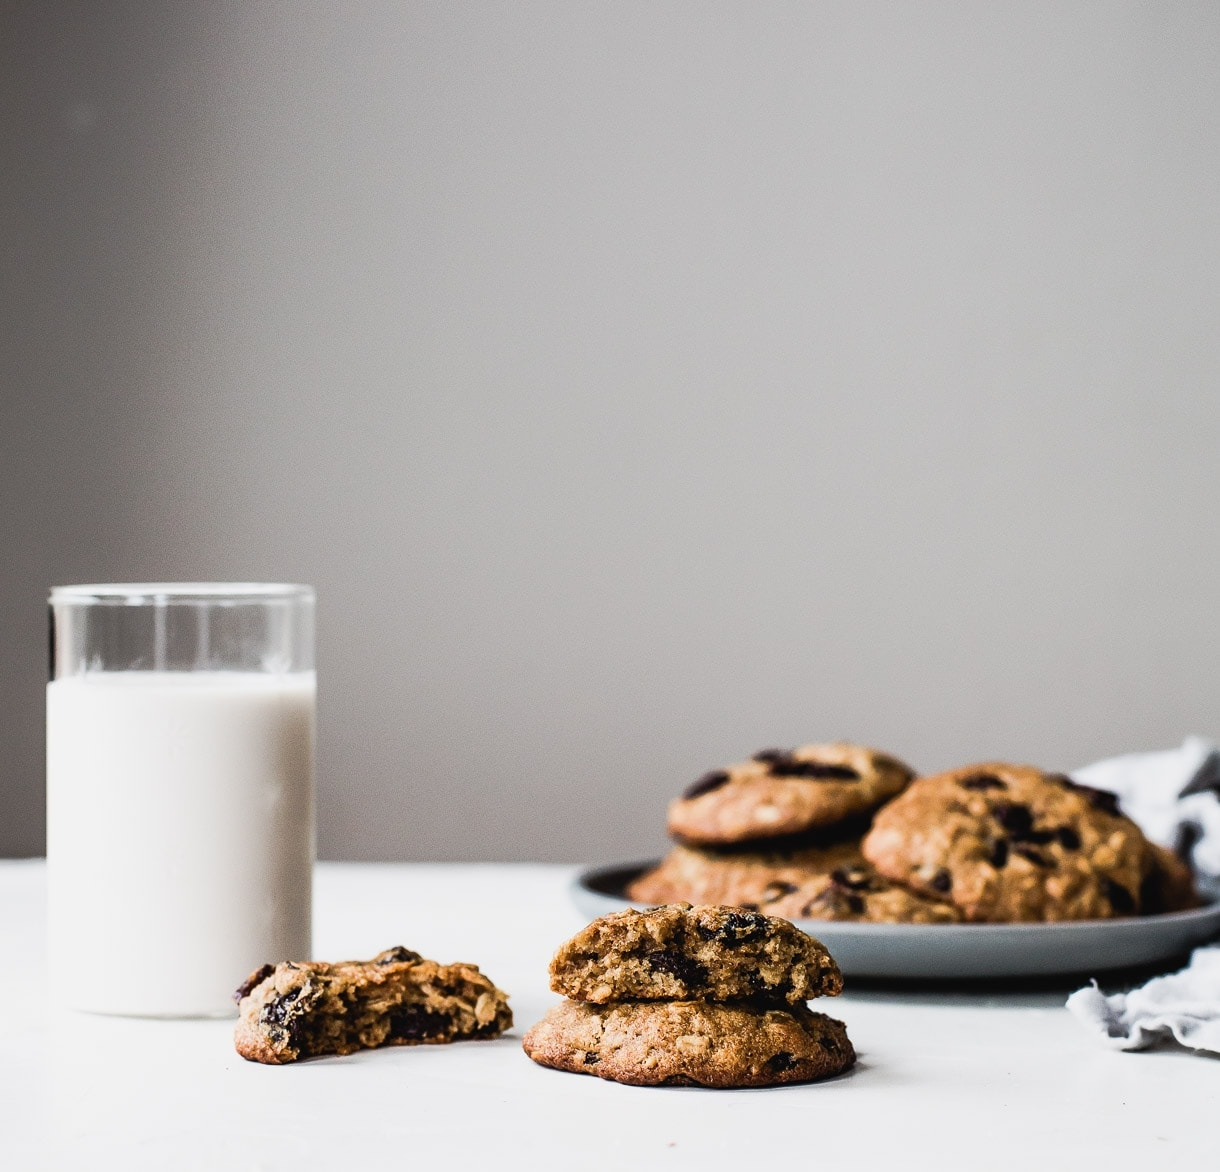 Gluten Free Oatmeal Raisin Cookies - cookies made with olive oil